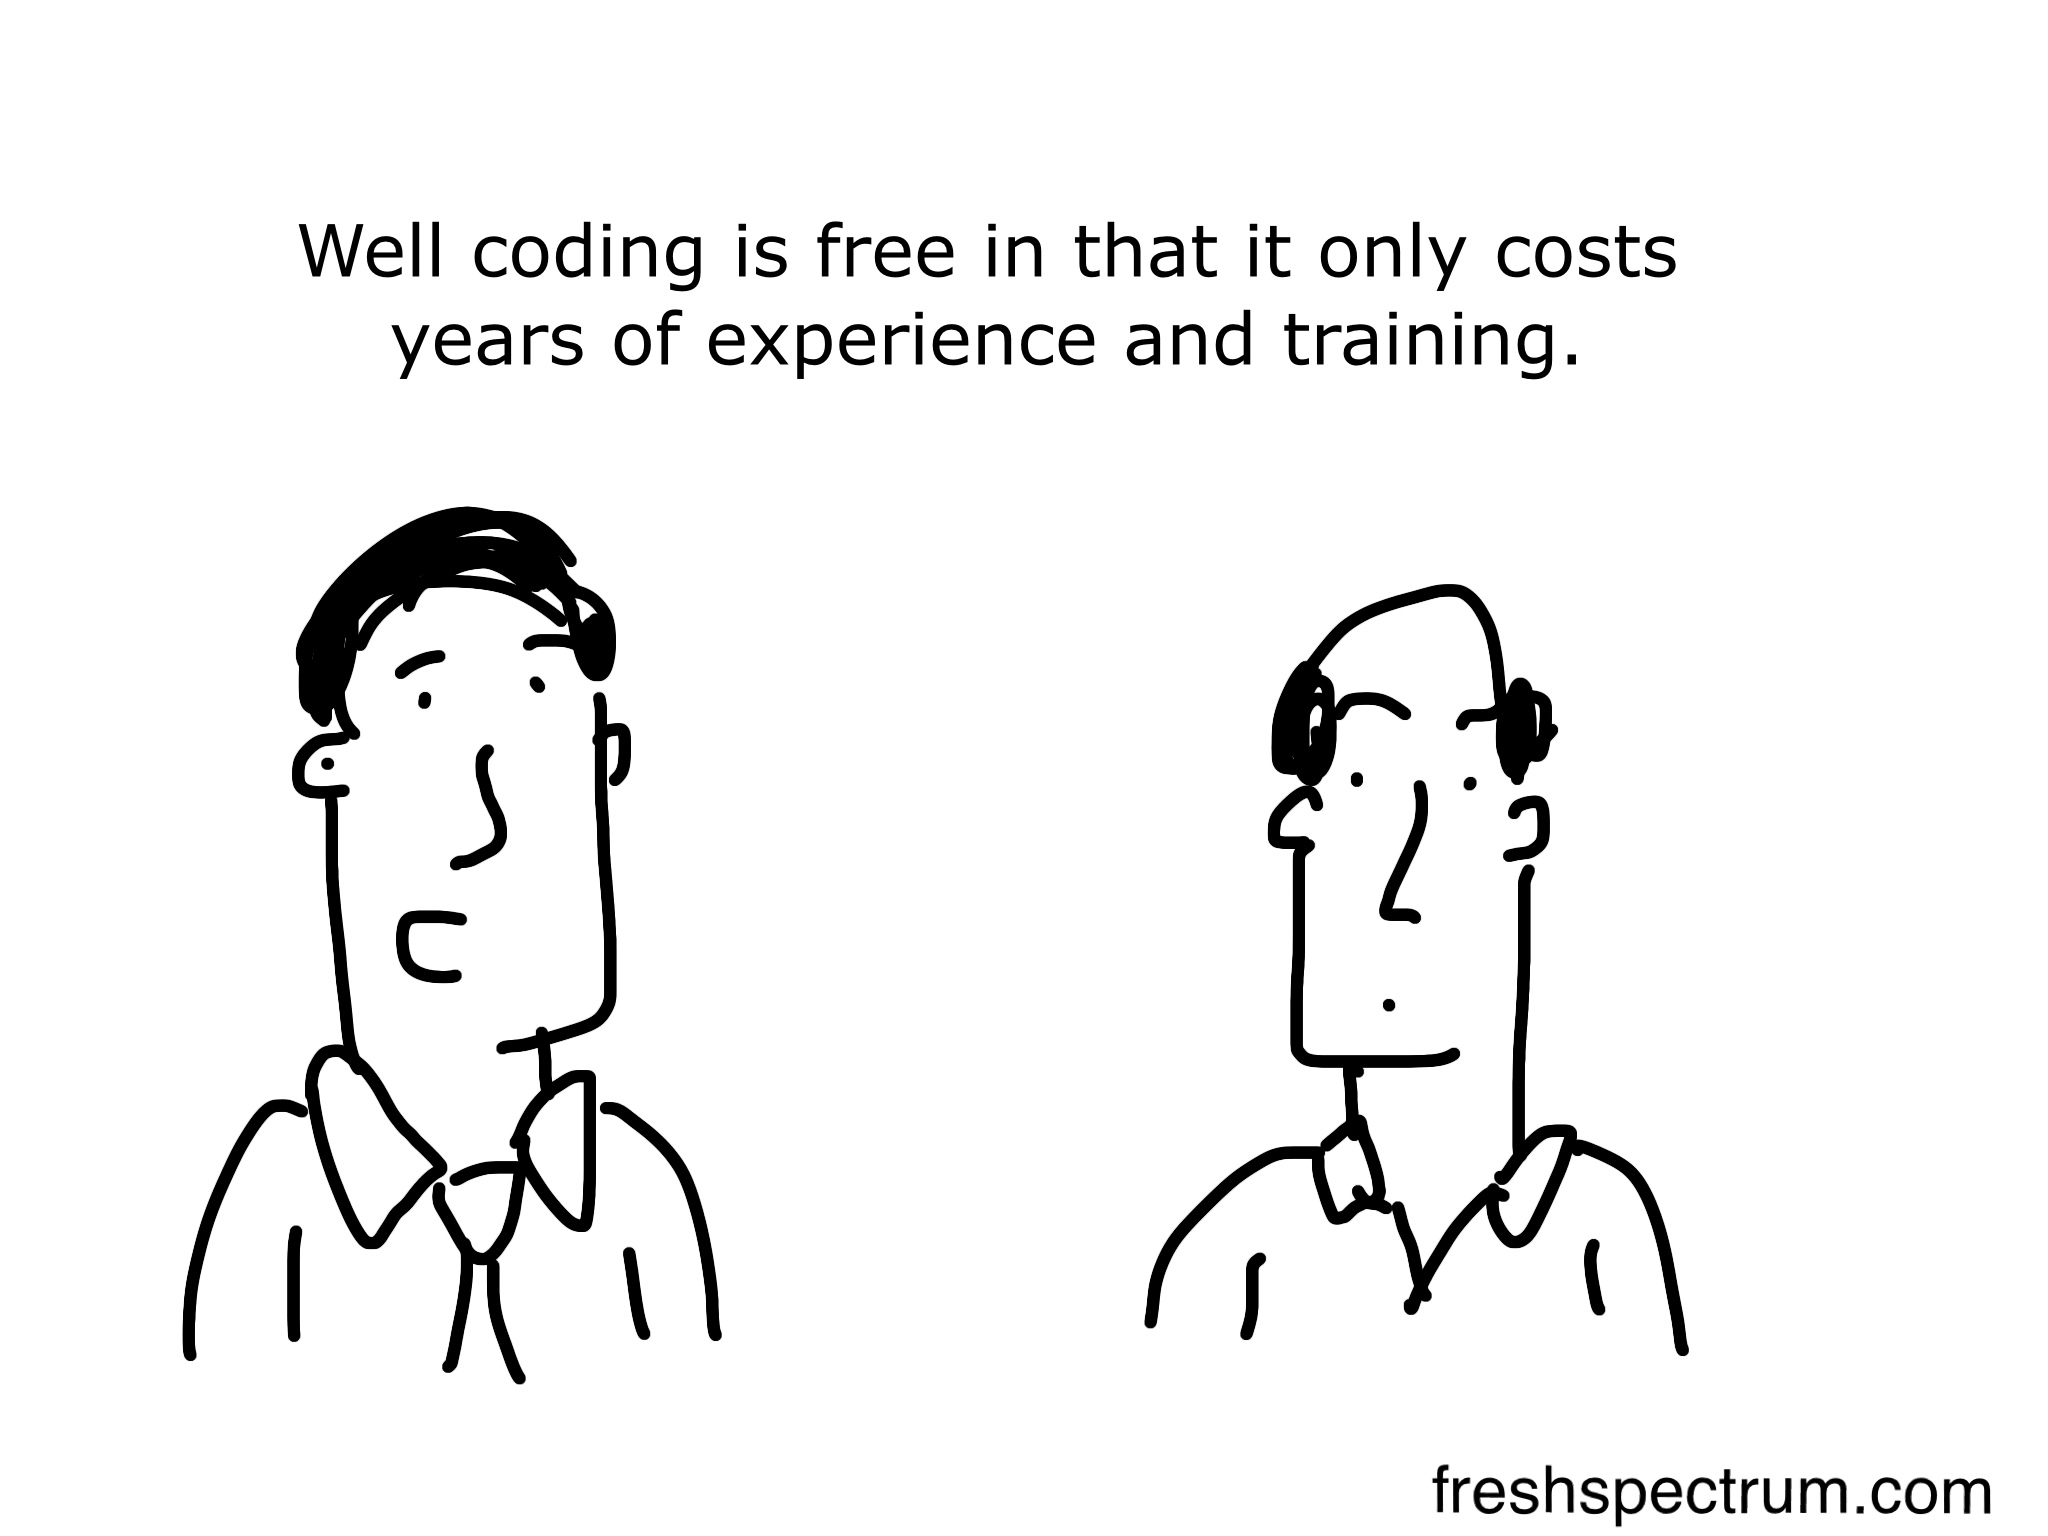 Well coding is free in that it only costs years of experience and training.